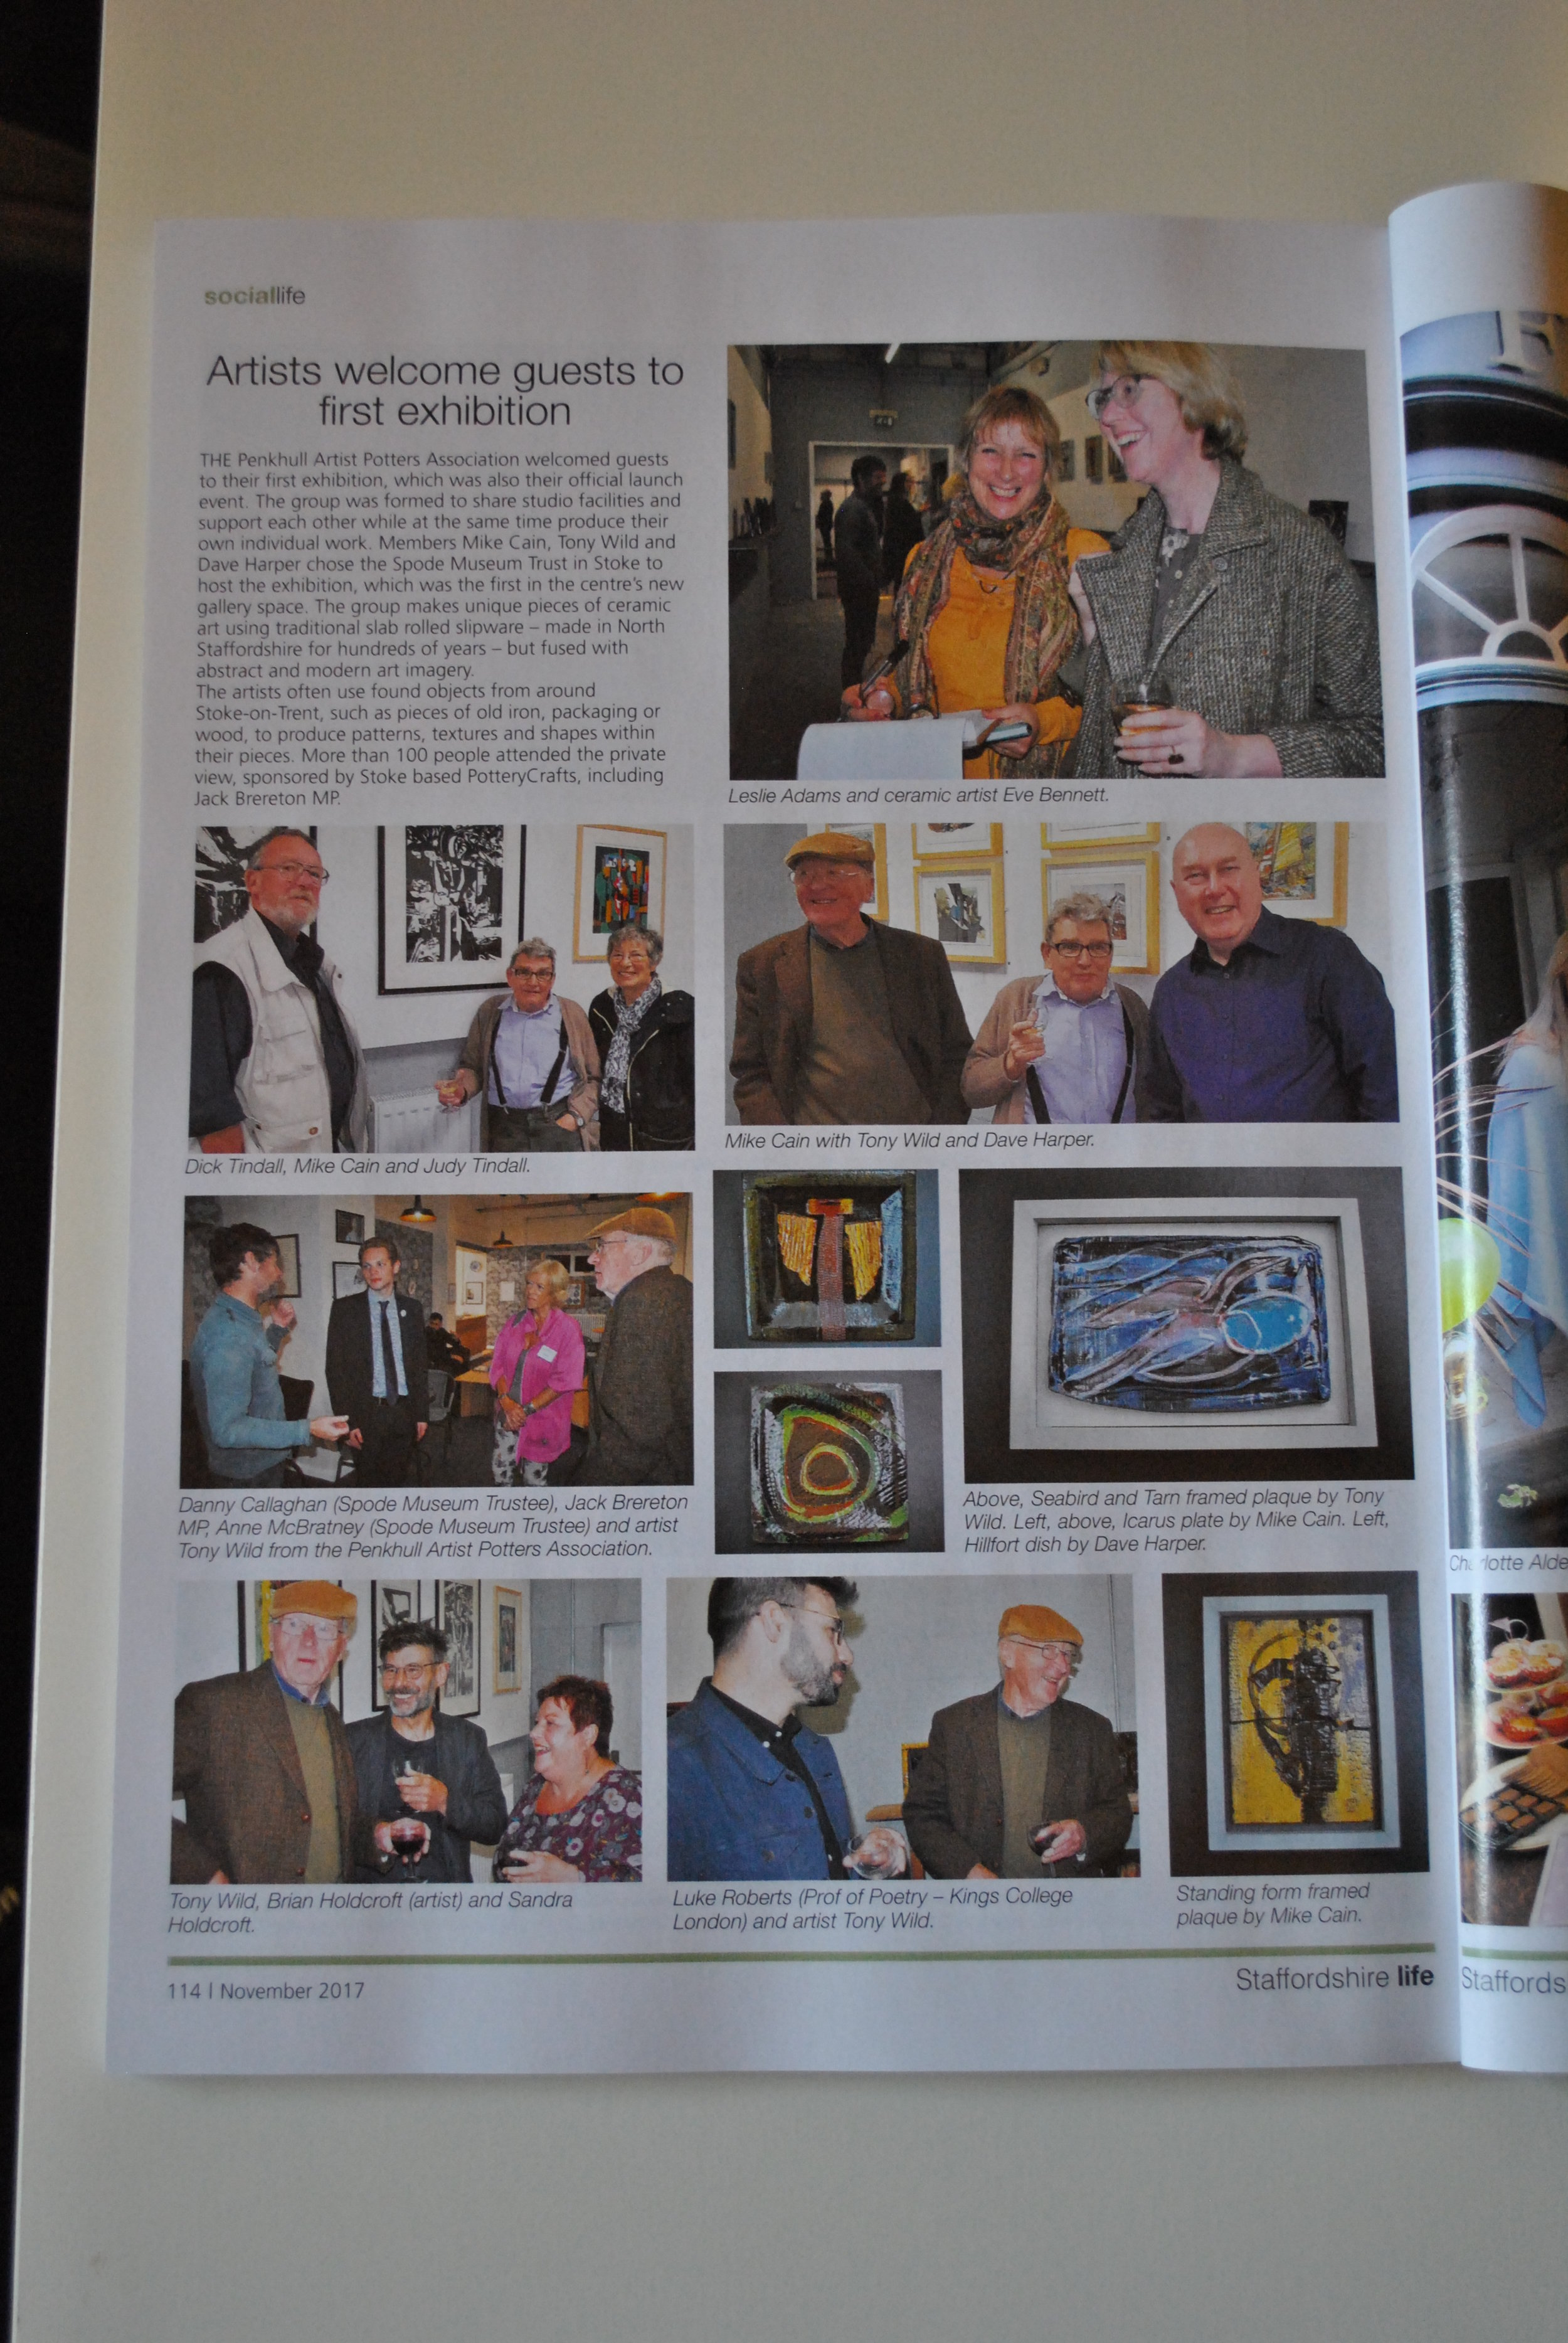 The November 2017 edition of Staffordshire Life caries the story of the launch of the Penkhull Artist Potters Association.